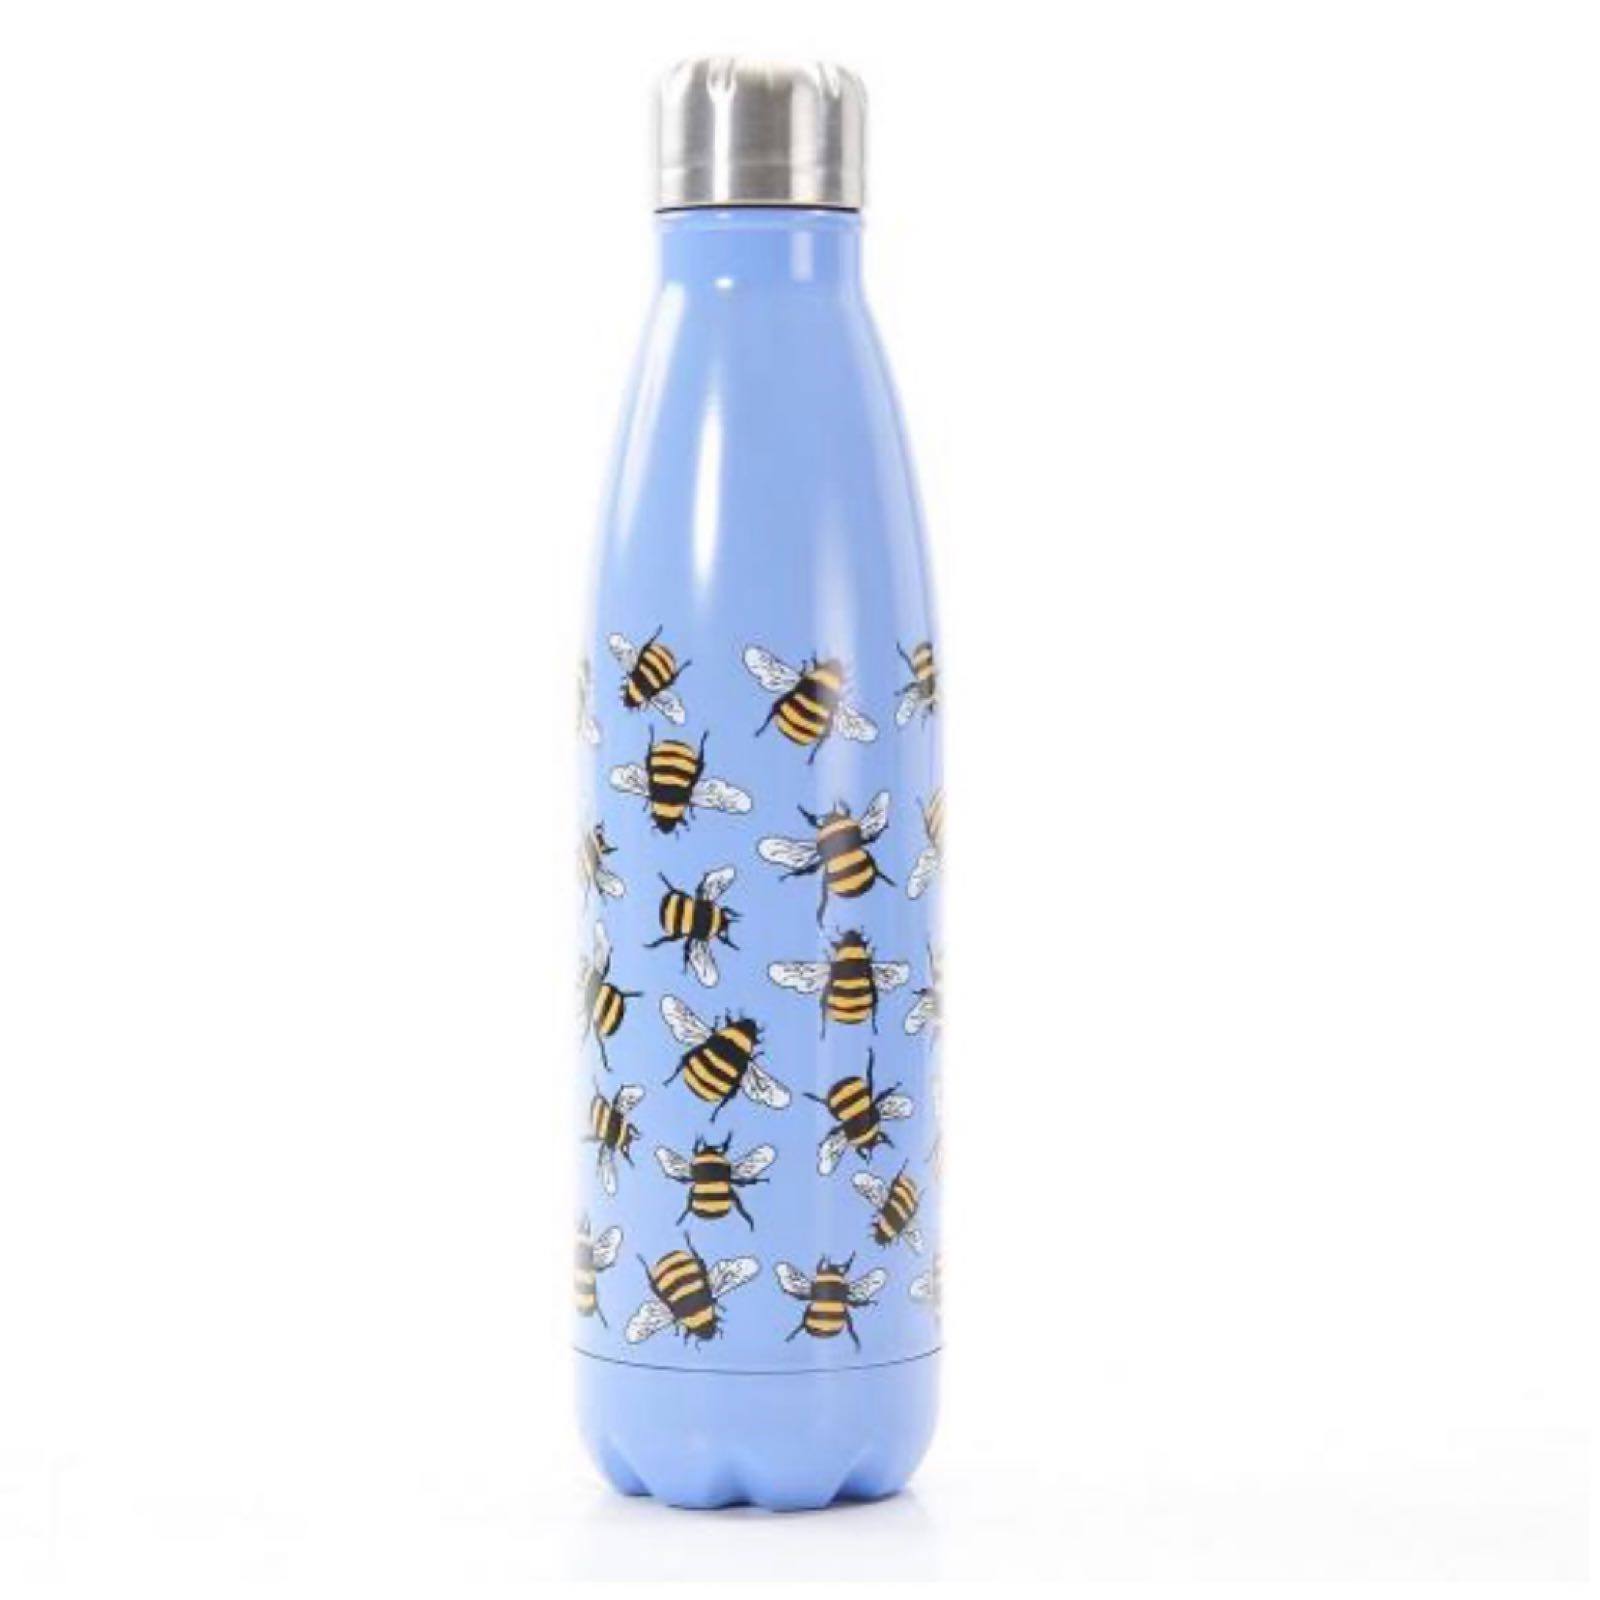 Bees Thermal Bottle